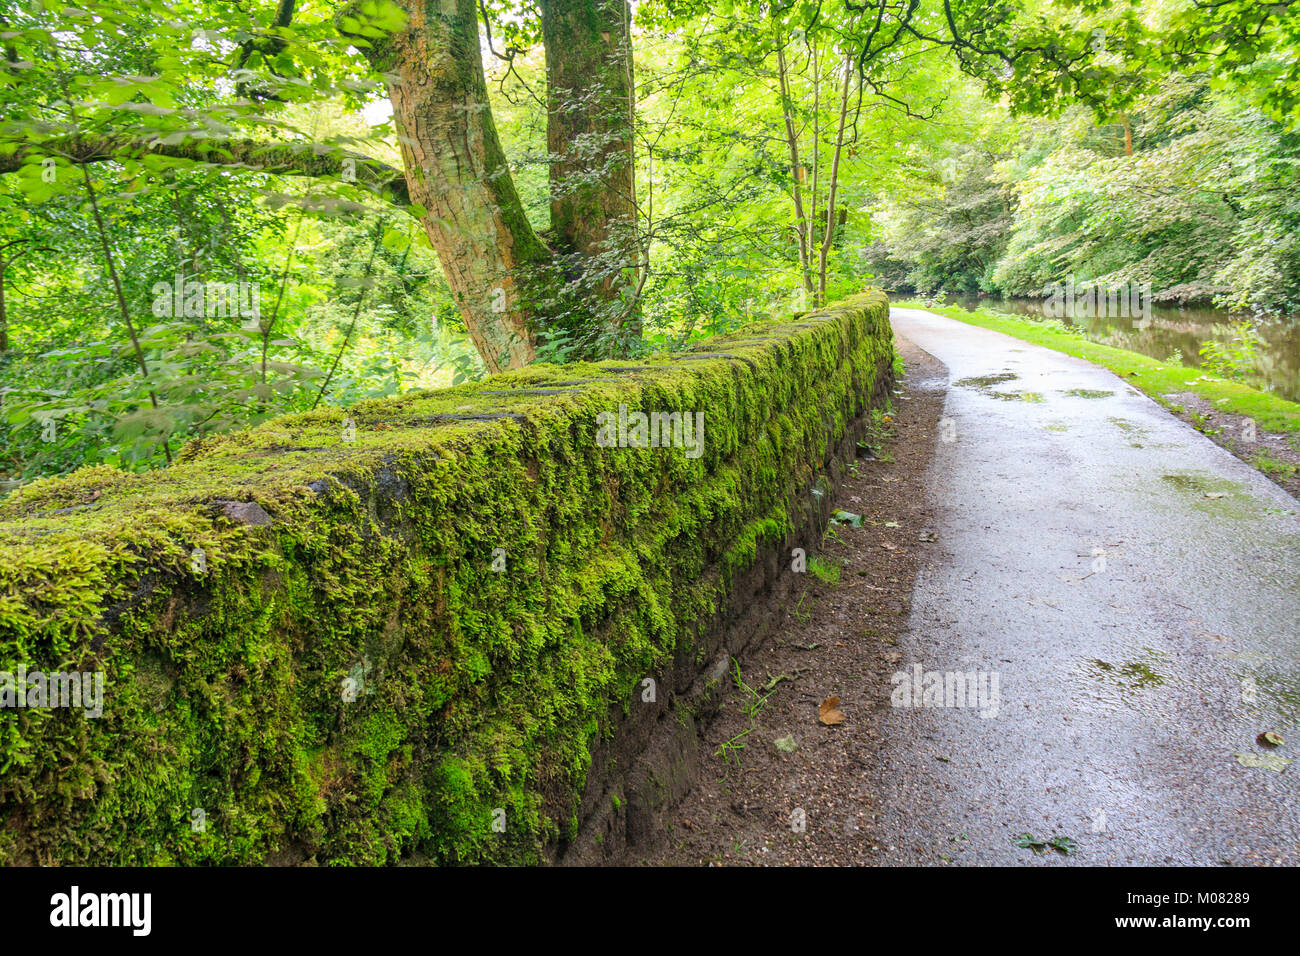 Towpath and green moss growing on stone wall, Huddersfield Narrow Canal, Uppermill, Oldham Lancashire, England, - Stock Image